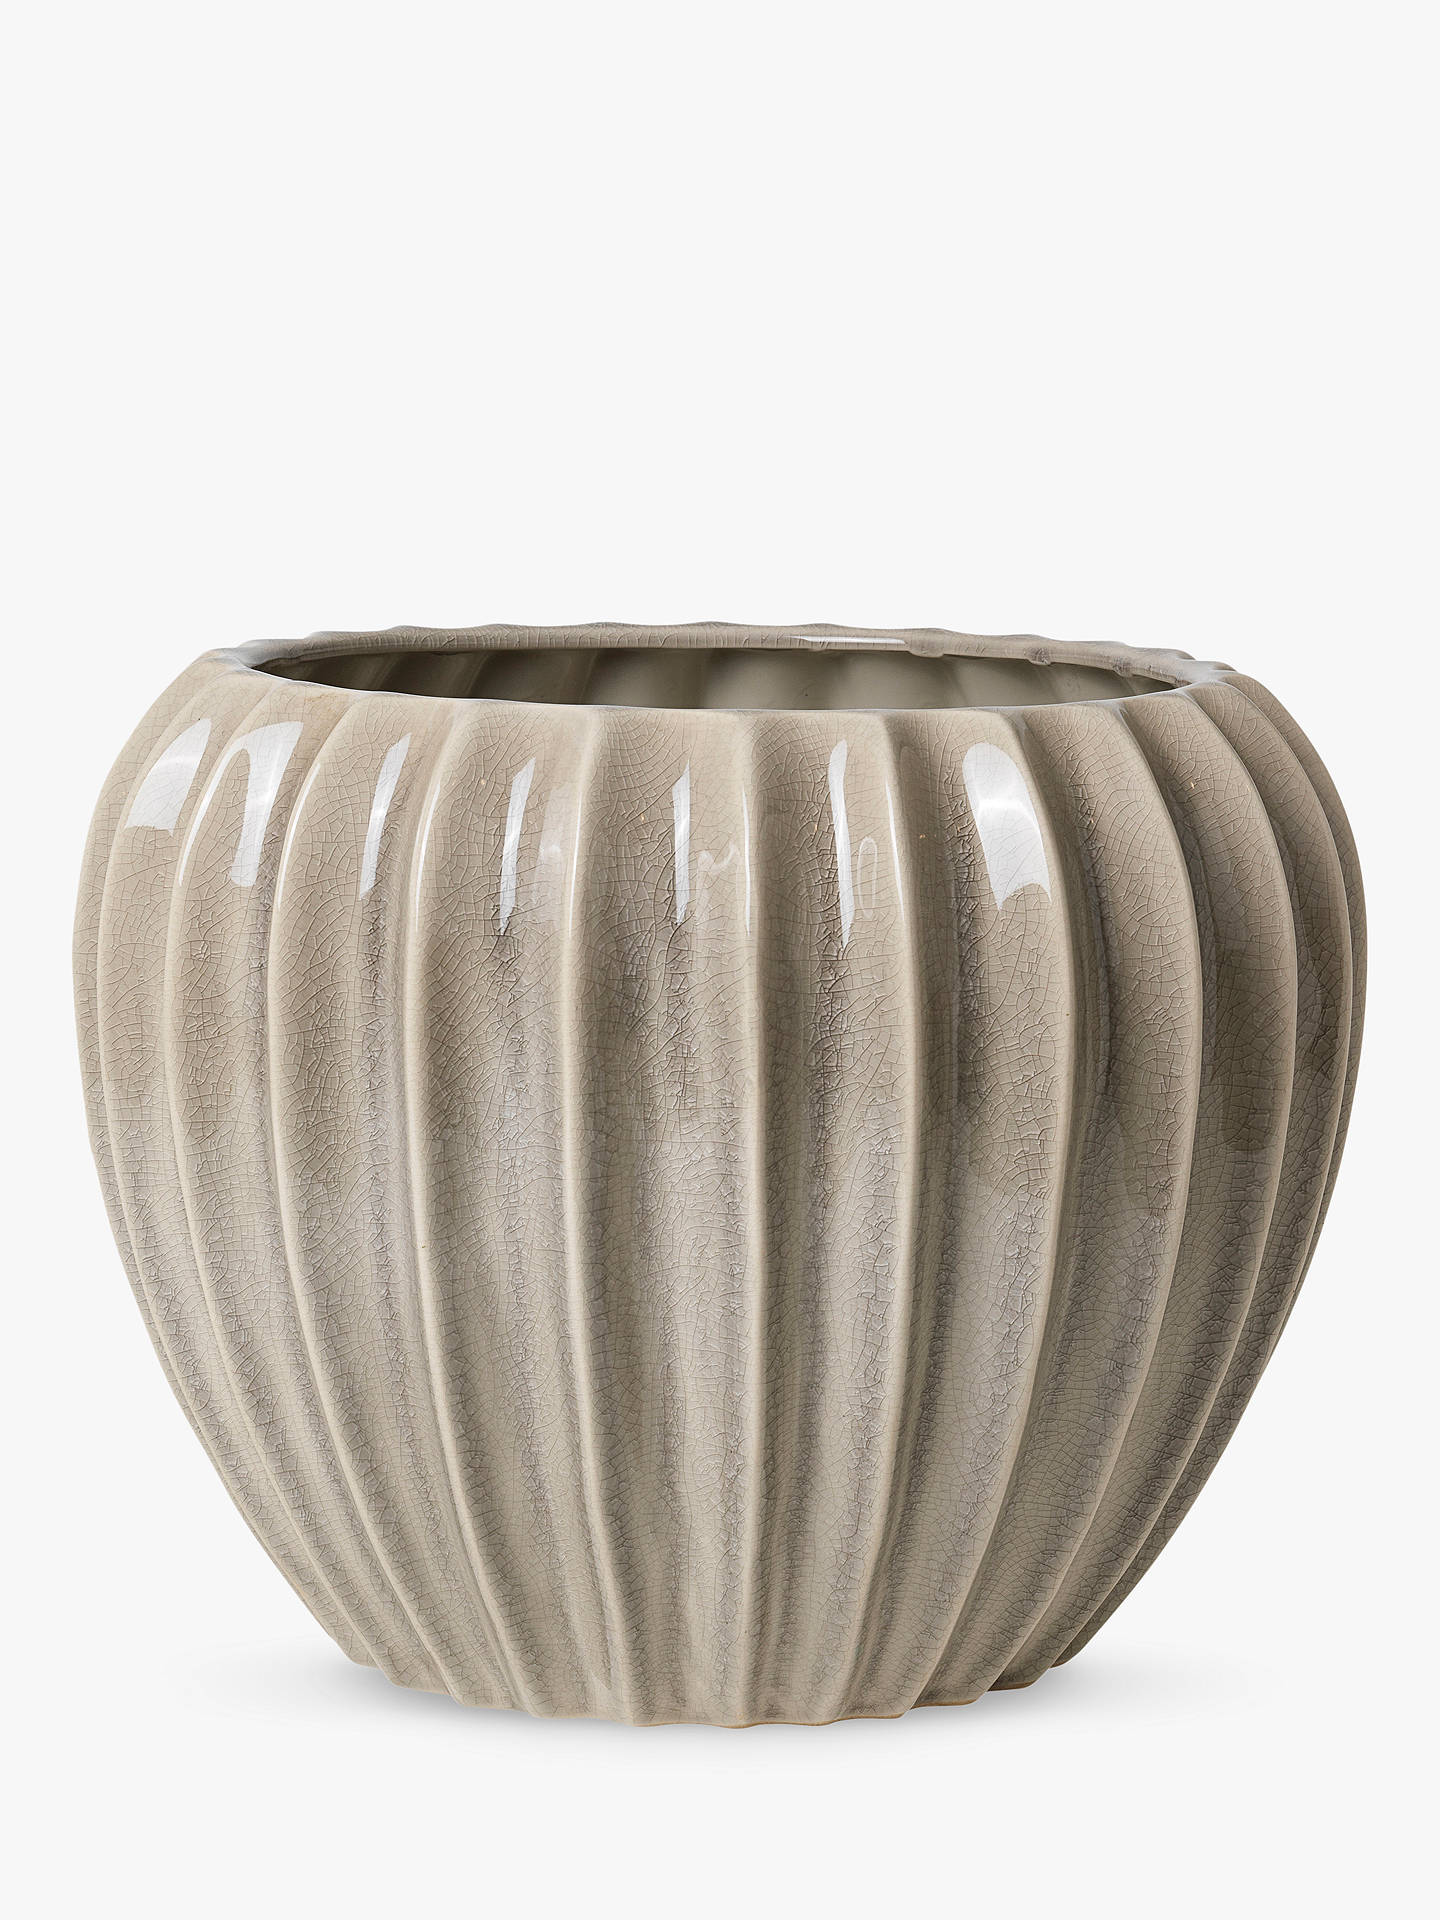 BuyBroste Copenhagen Wide Flower Pot, Medium Online at johnlewis.com